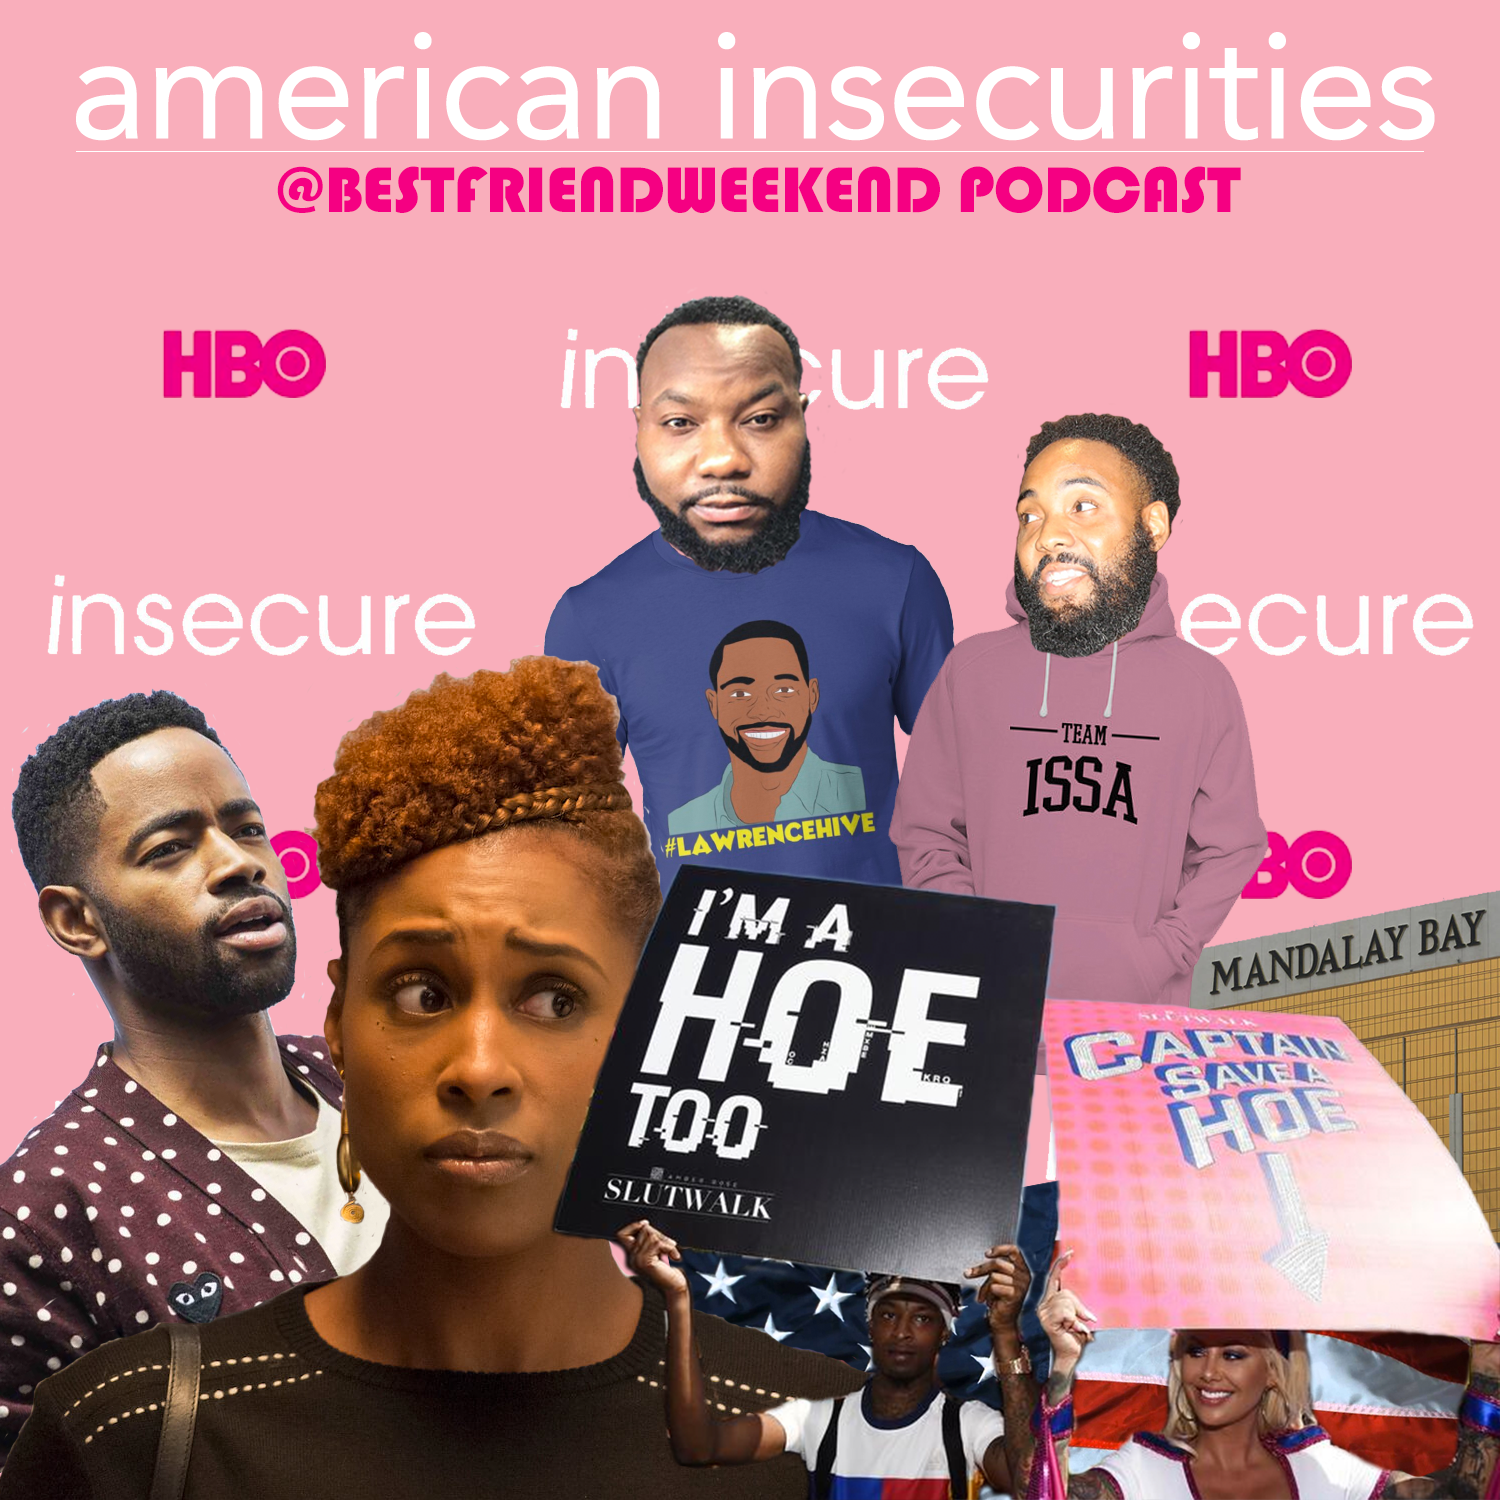 American Insecurities Cover